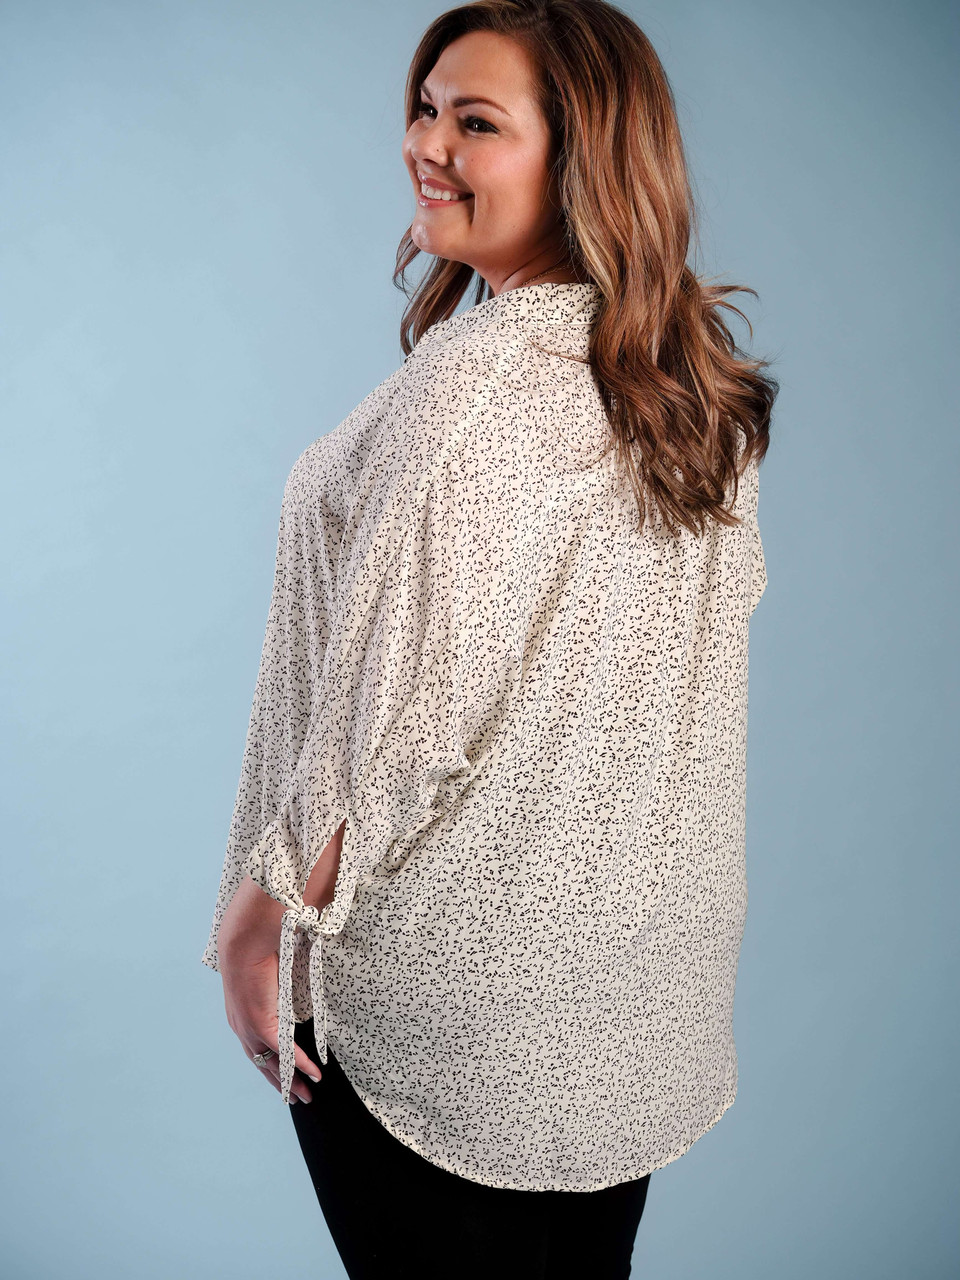 lightweight blouse with v-neck collar 3/4 length sleeve plus clothing curvy